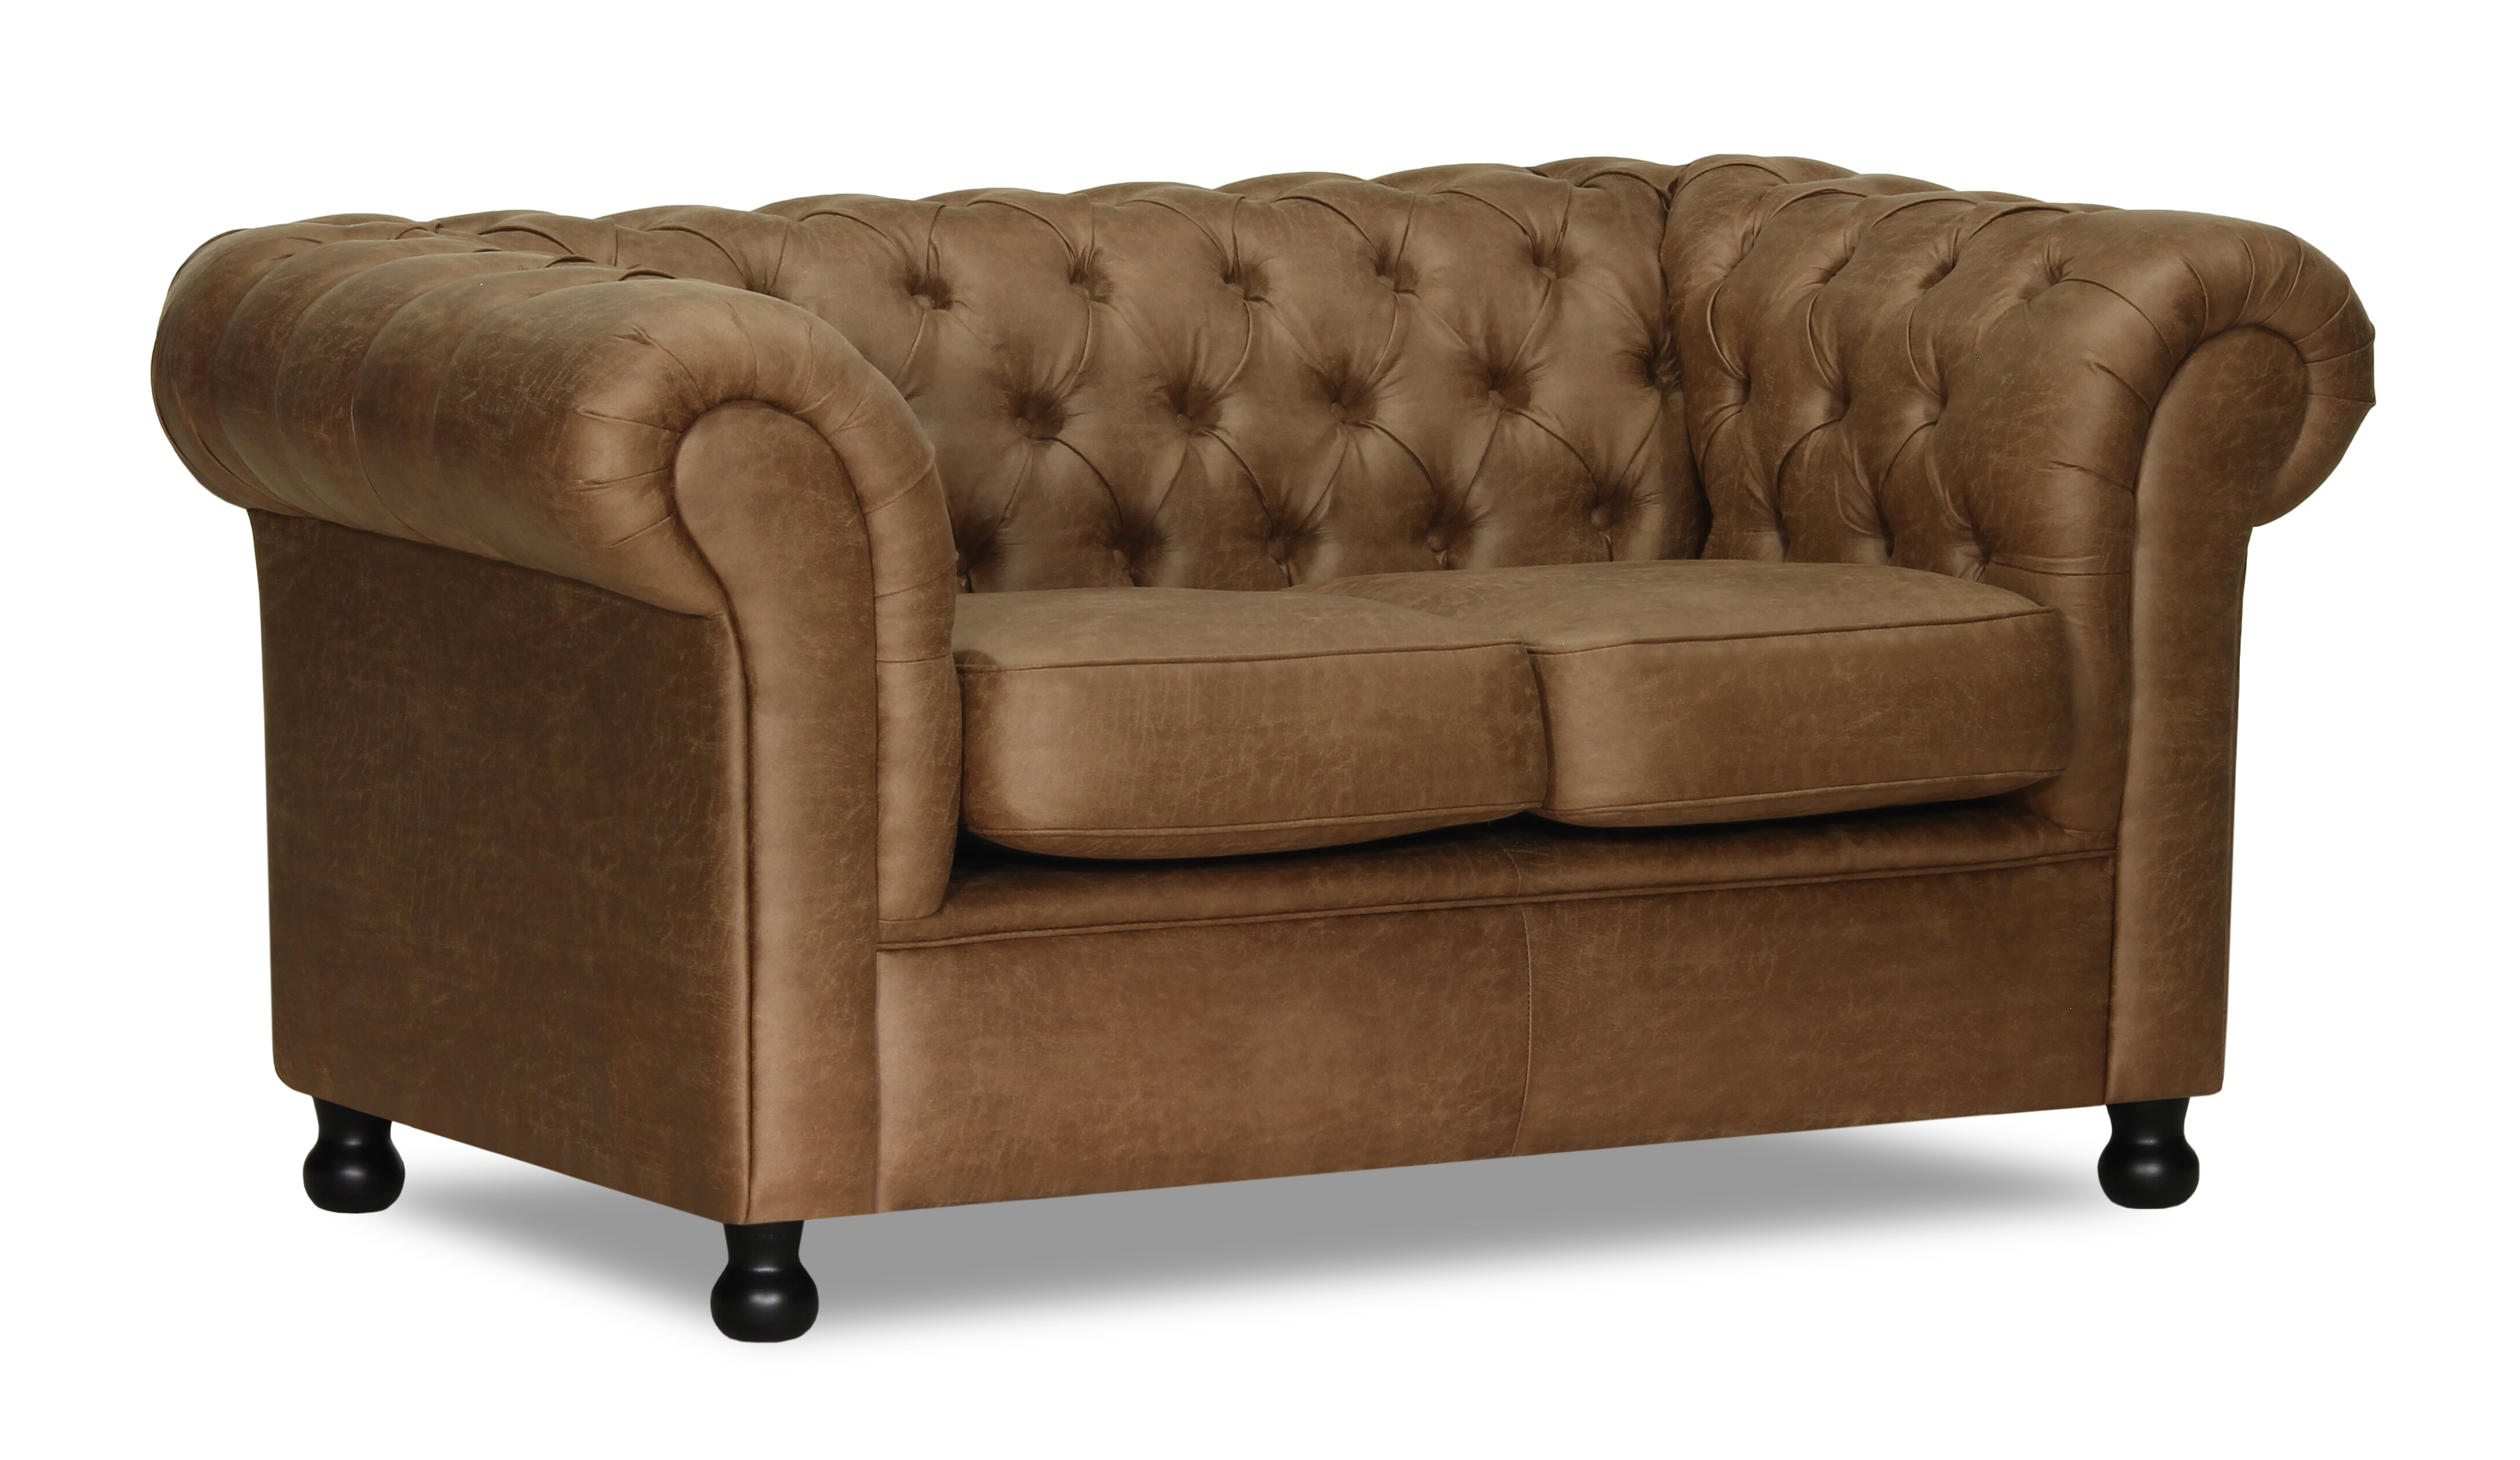 Small 2 Seater Chesterfield Wayfair Co Uk